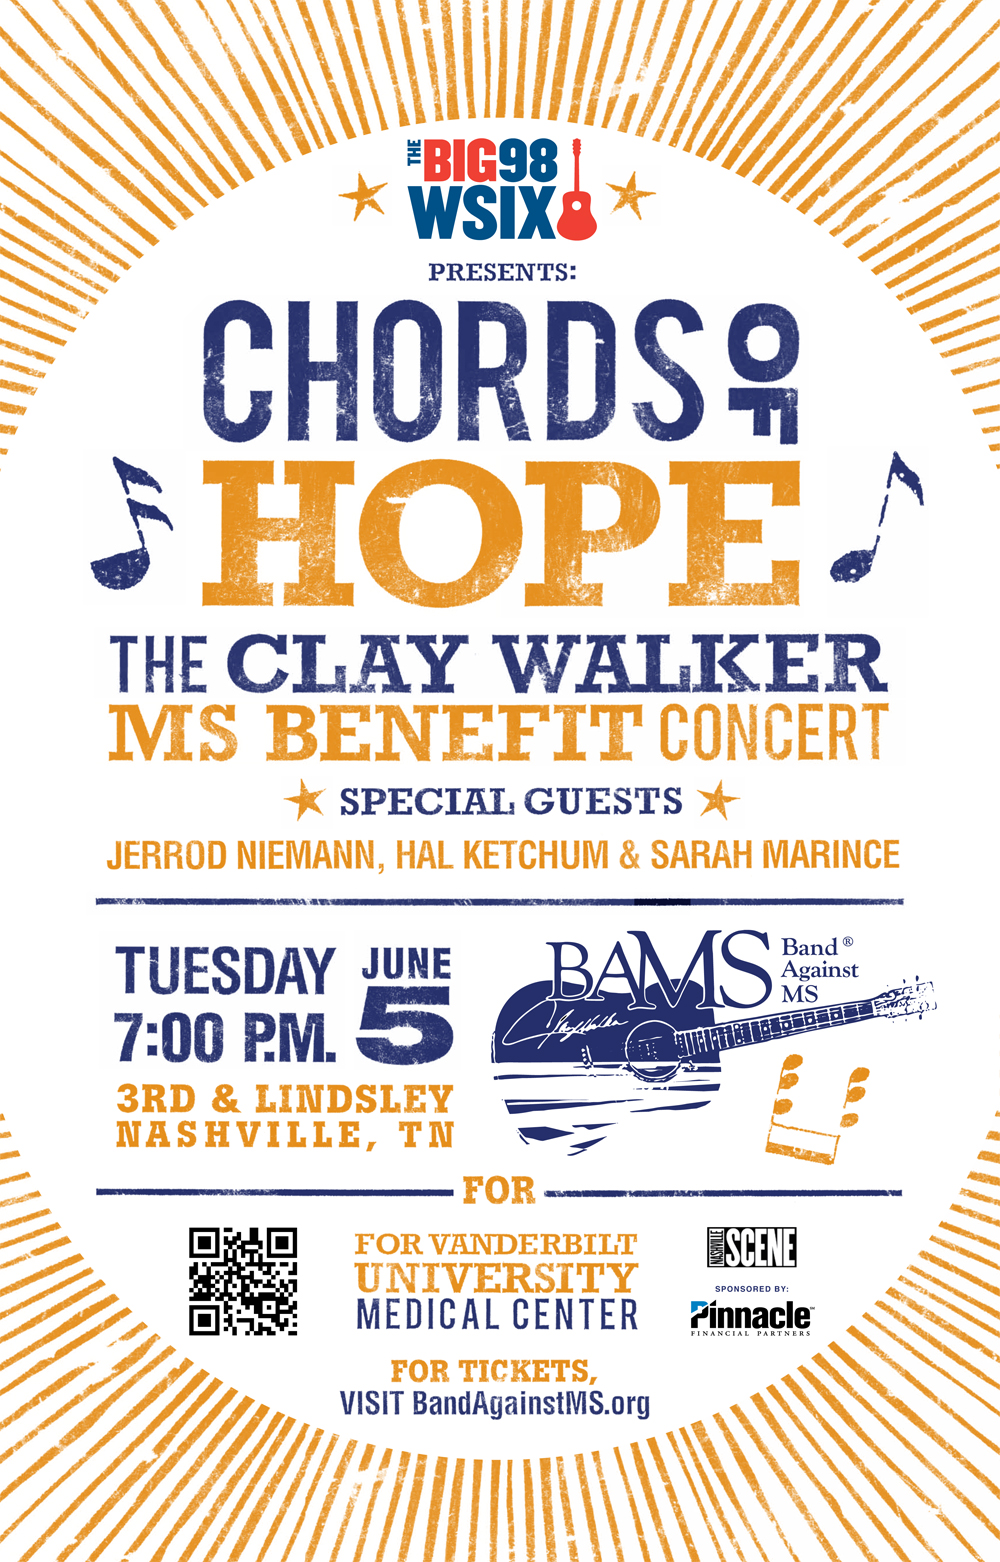 Band Against MS Chords of Hope Poster